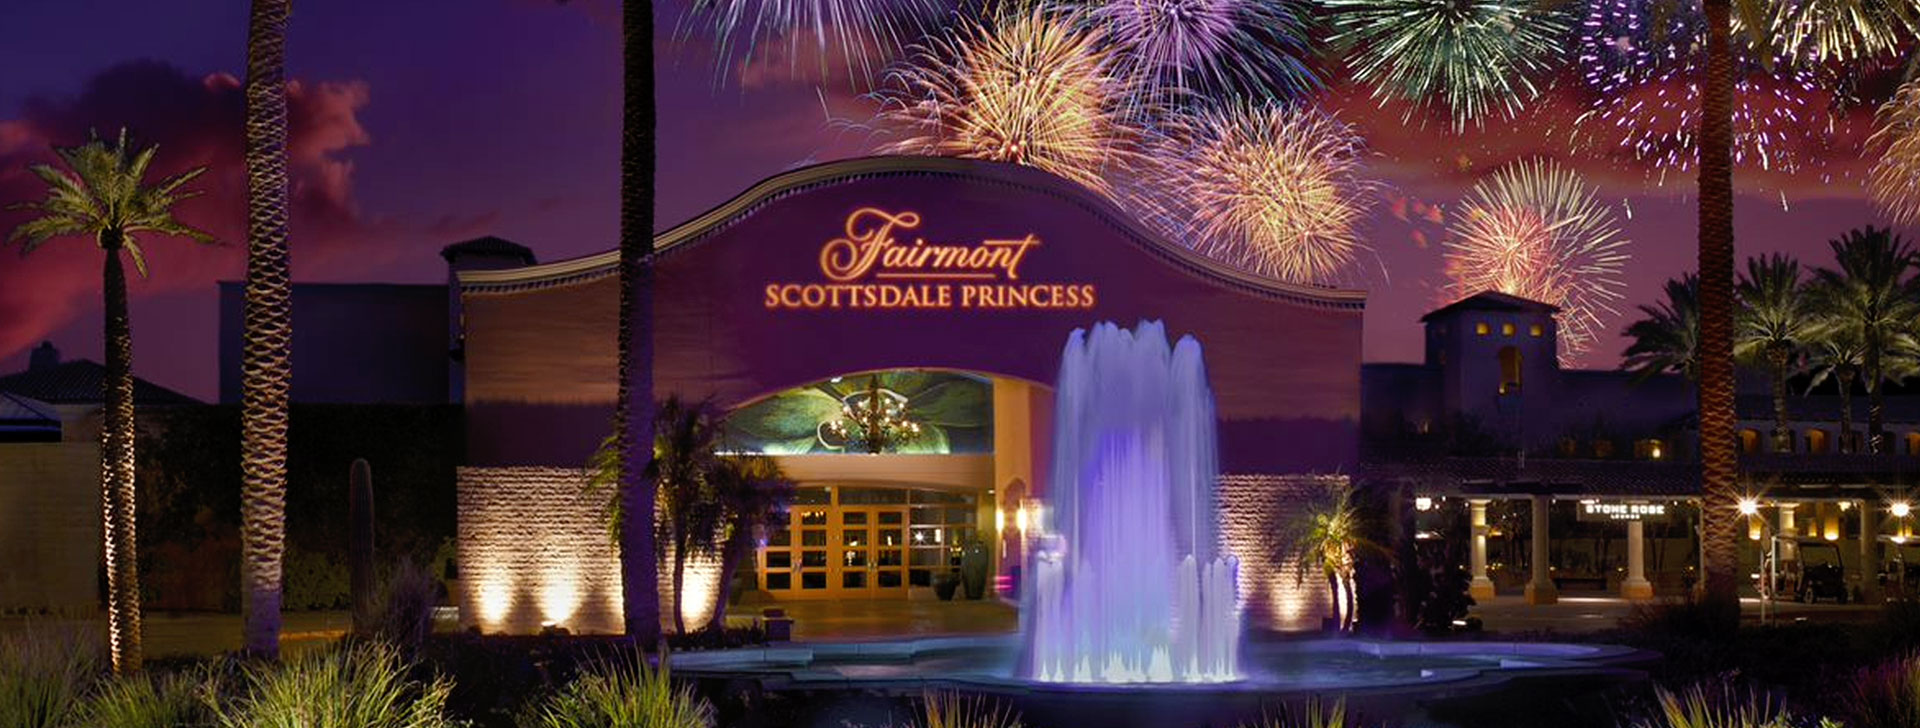 Meeting Offers at Fairmont Scottsdale Princess, Arizona